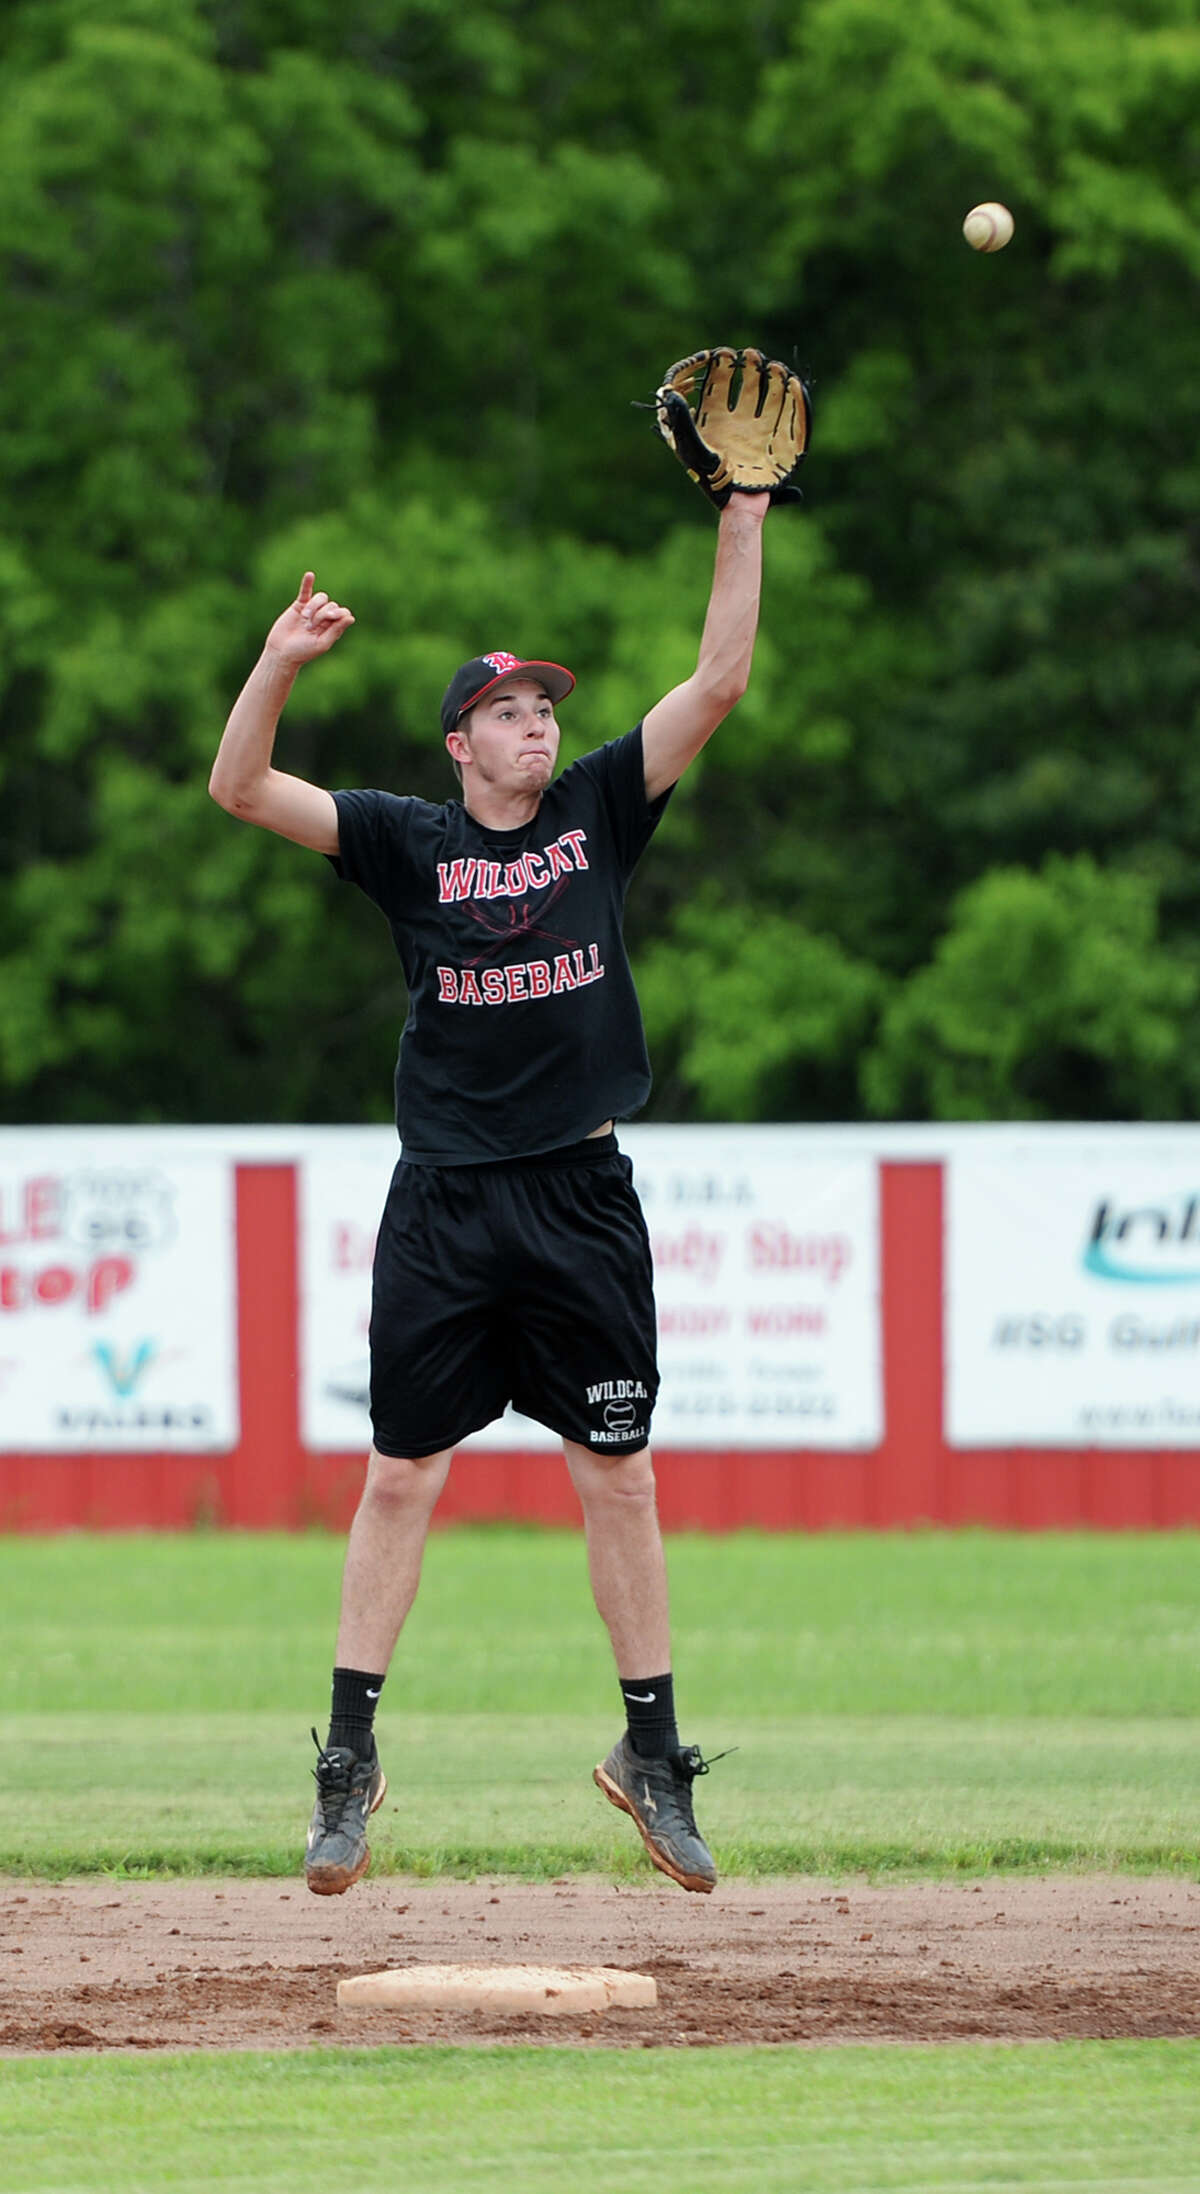 Kevin Self leaps up for a catch at second base during practice on Tuesday afternoon. The Kirbyville High School baseball team practiced Tuesday in preparation for the regional quarterfinals against Central Heights High School. Photo taken Tuesday 5/13/14 Jake Daniels/@JakeD_in_SETX